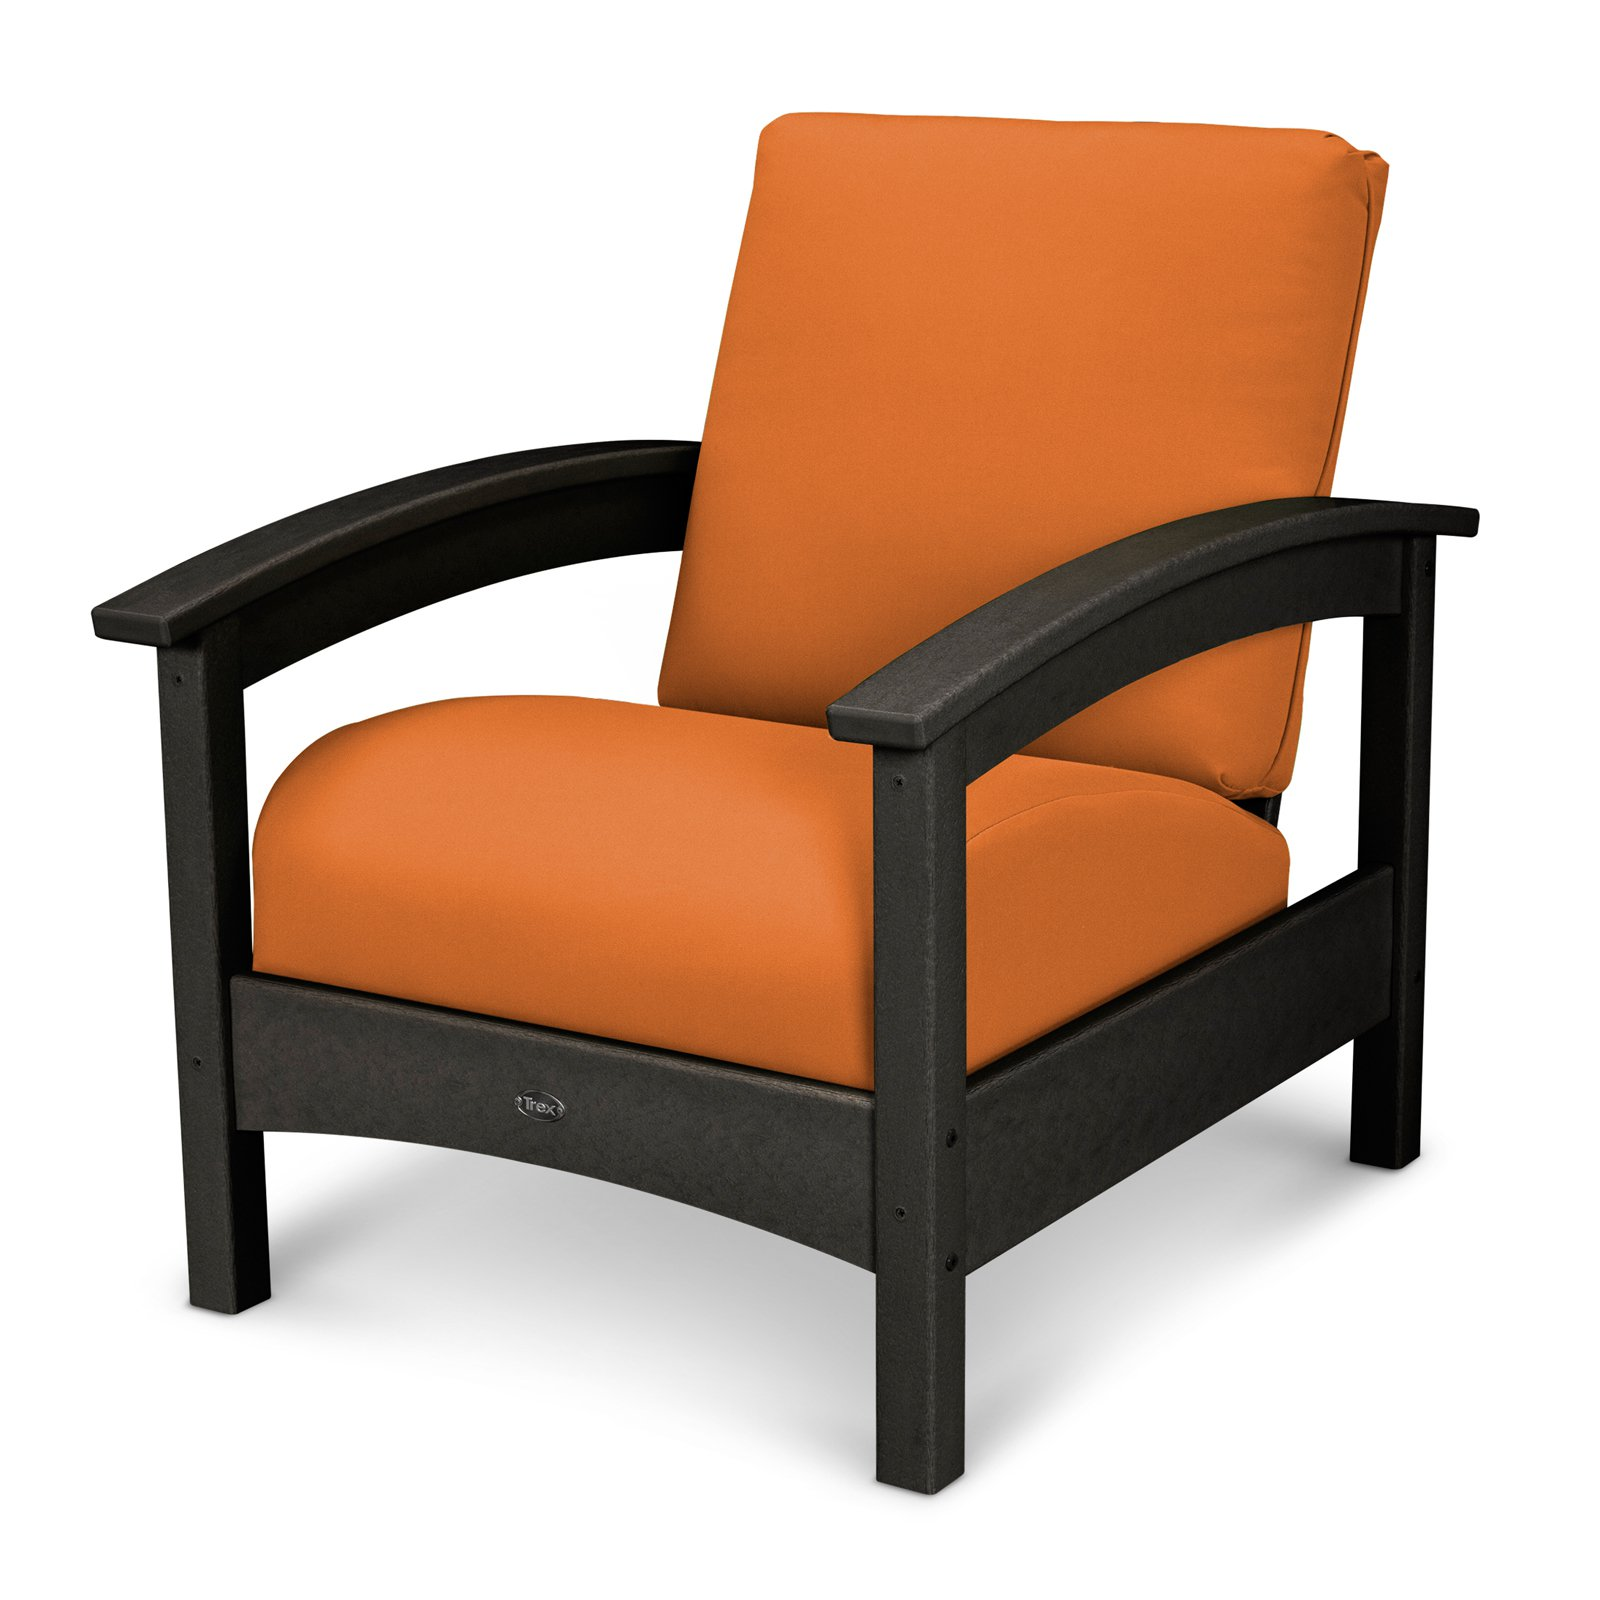 Trex Outdoor Furniture Recycled Plastic Rockport Club Chair